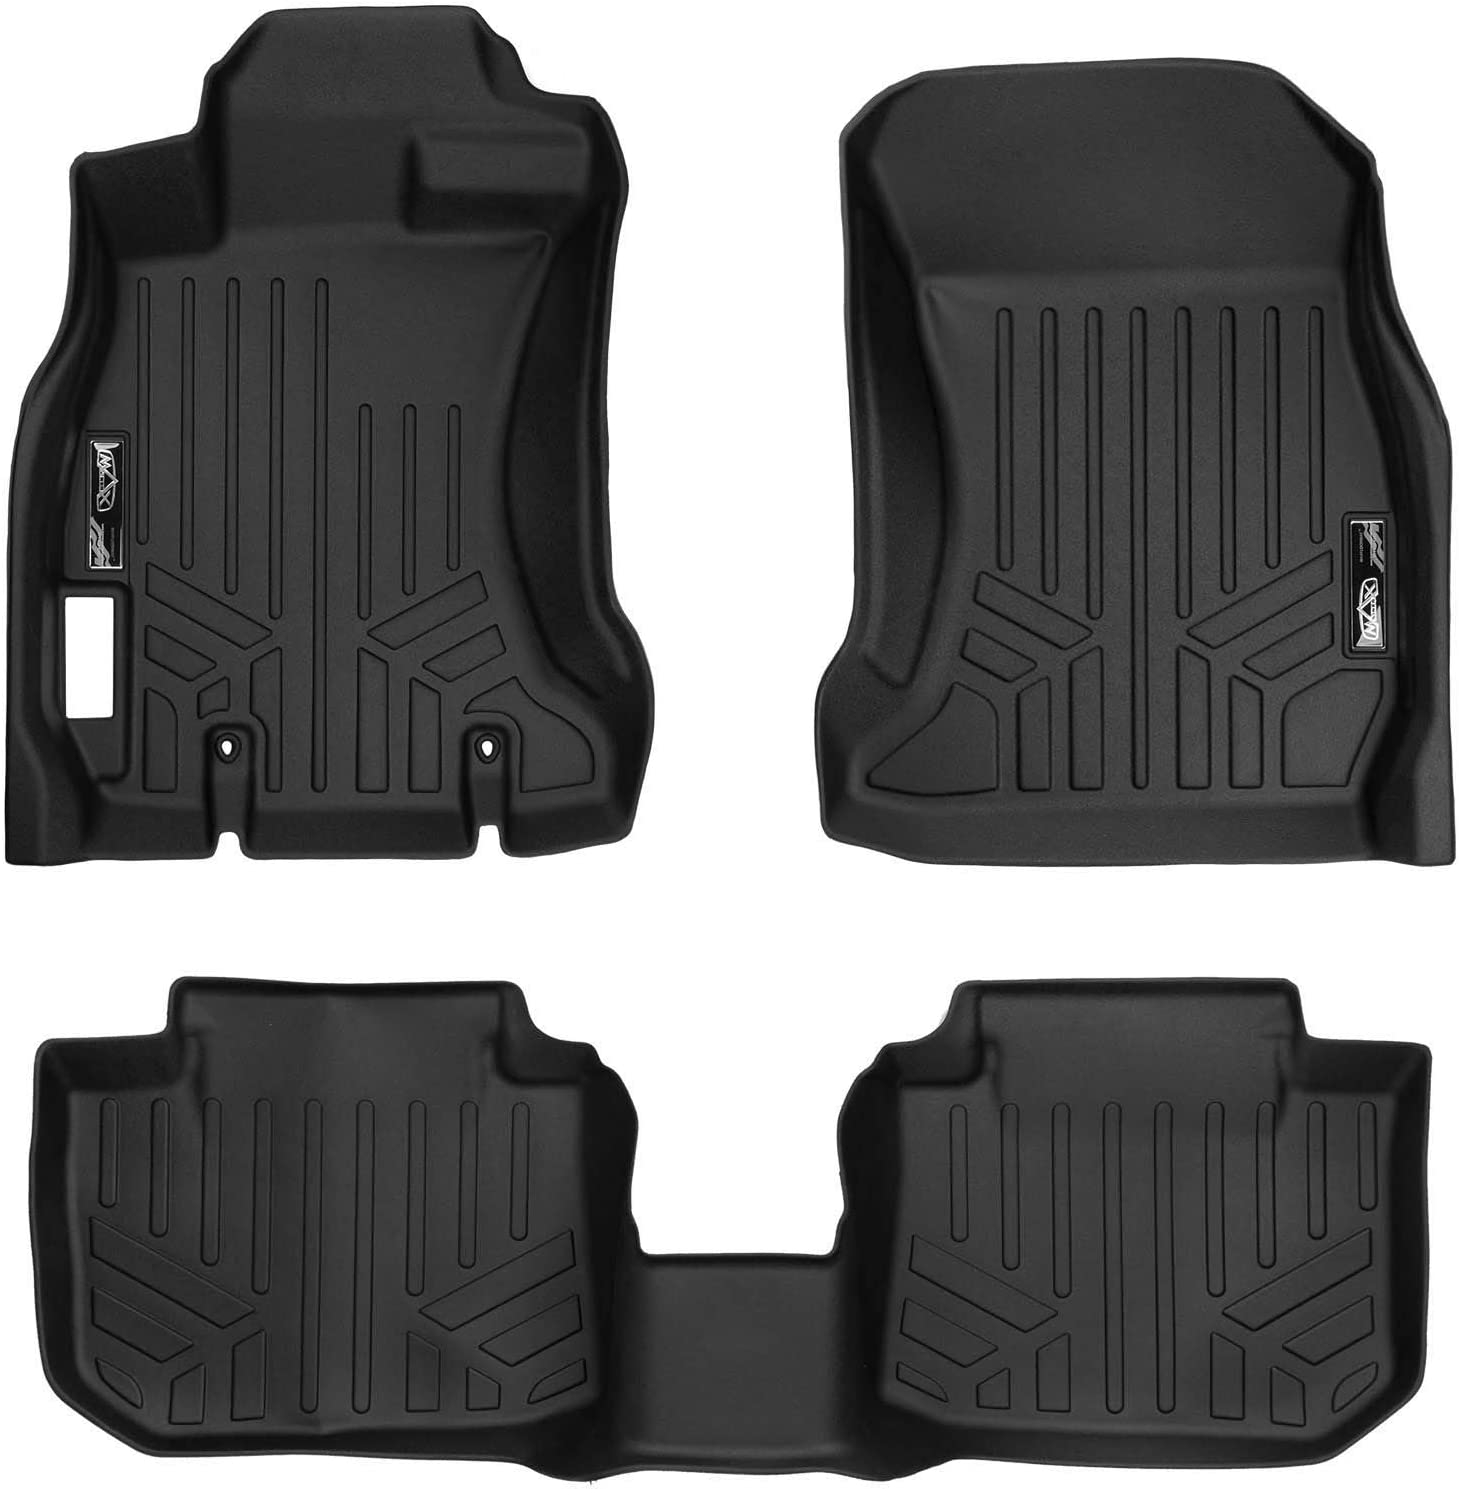 SMARTLINER Custom Fit Floor Mats 2 Row Liner Set Black for 2013-2017 Subaru Crosstrek//XV Crosstrek